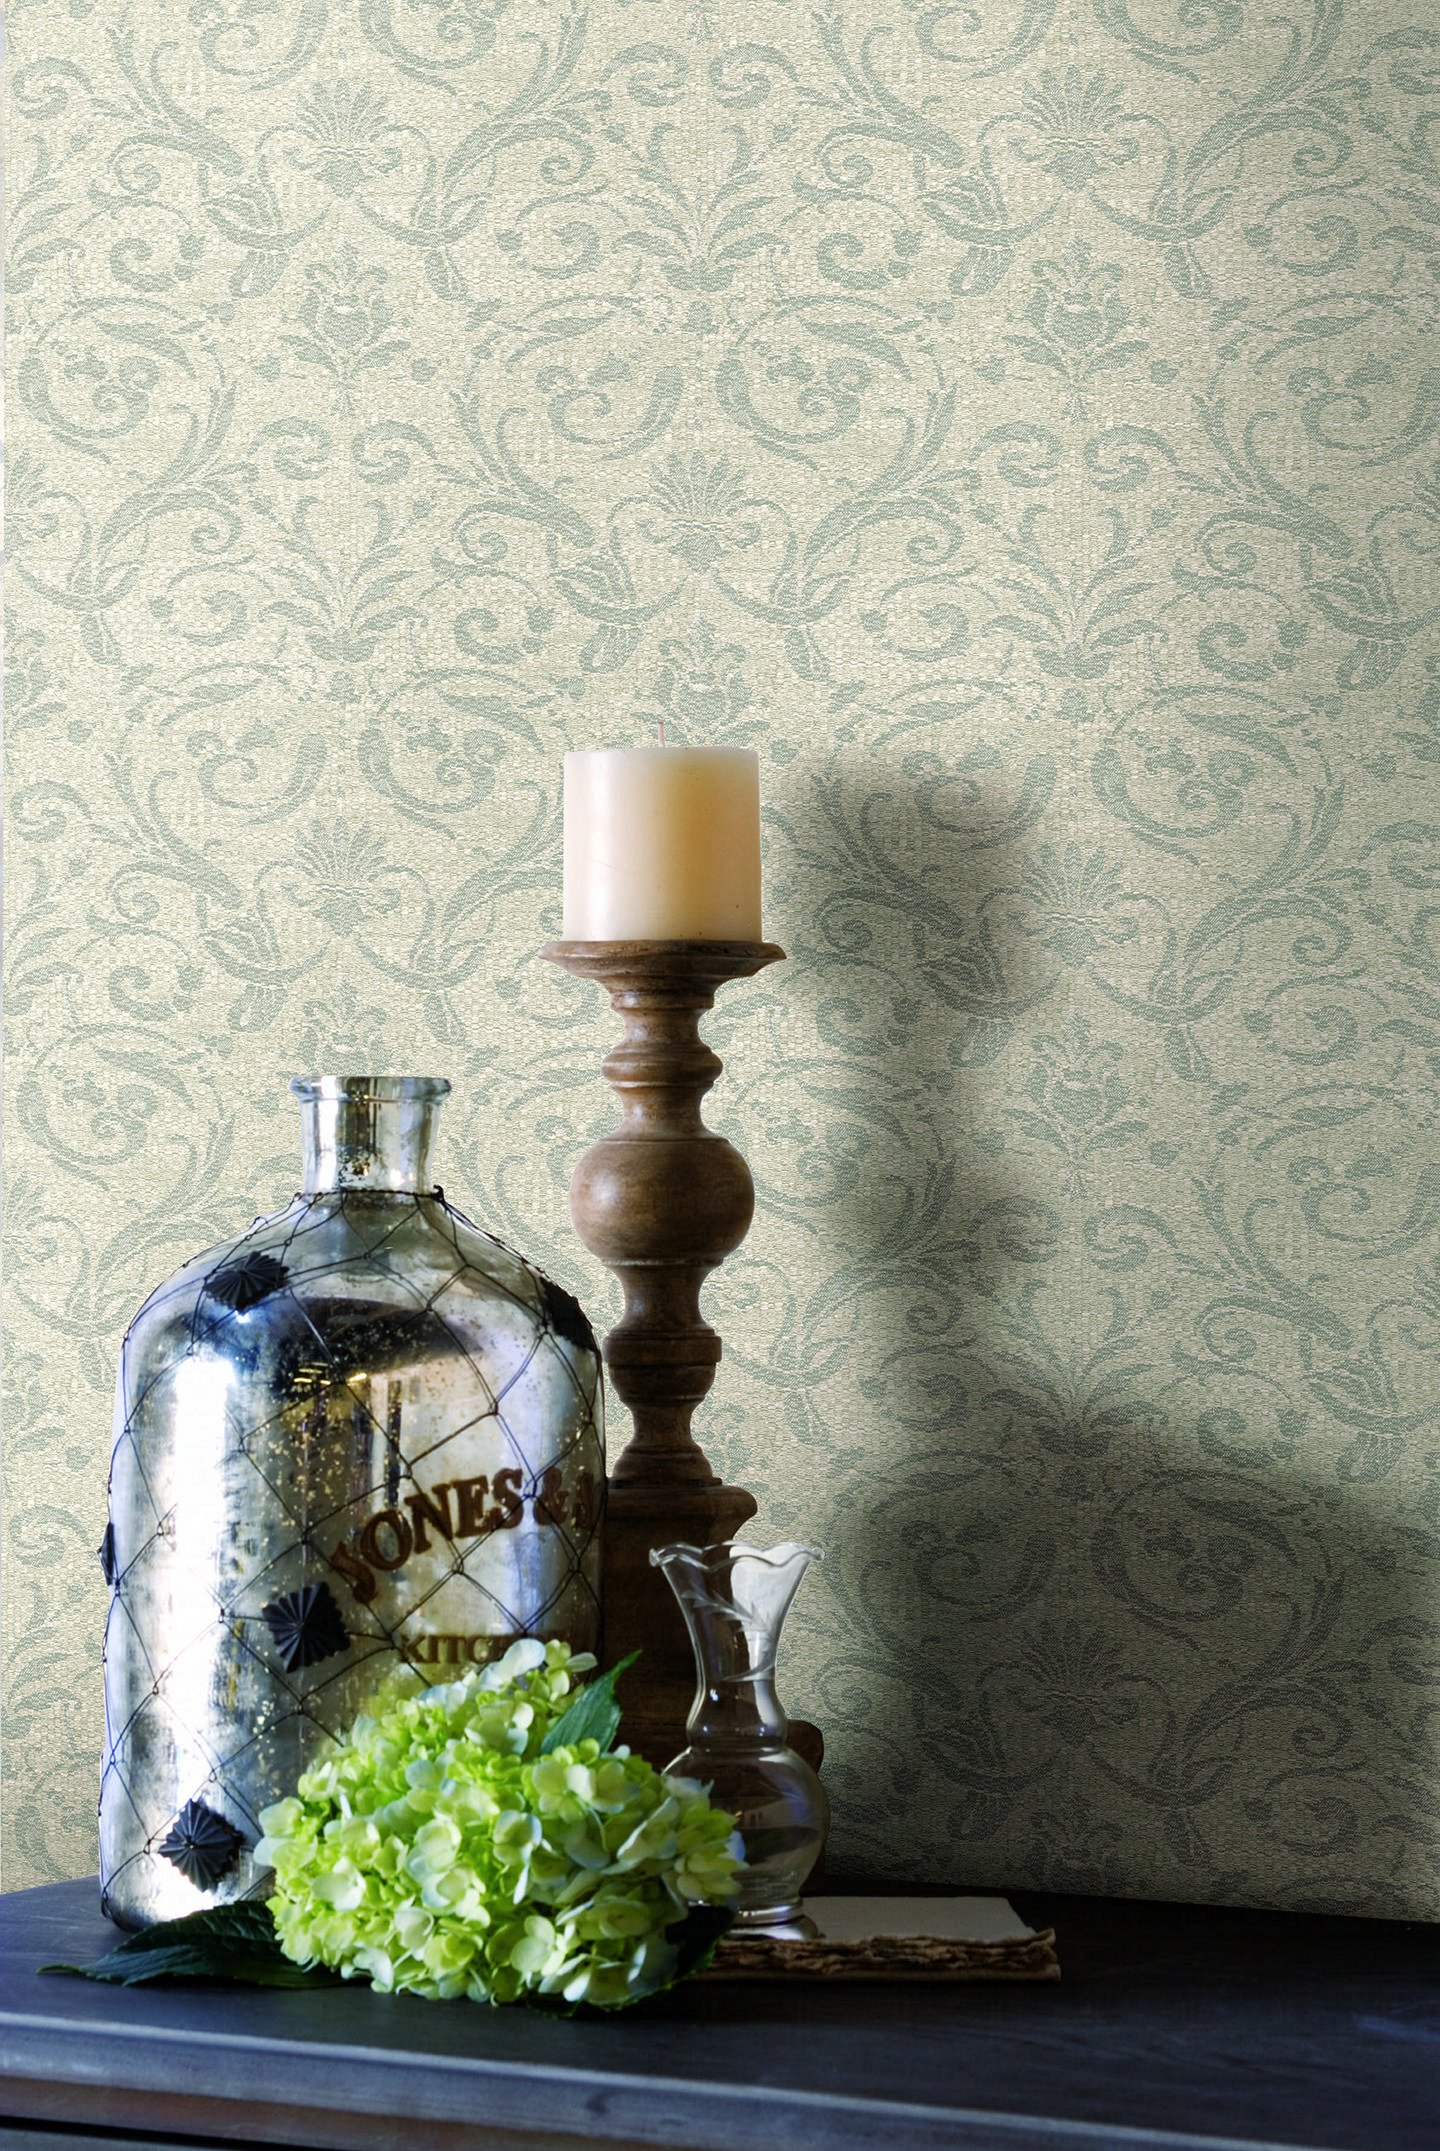 new regents park collection from wallquest features